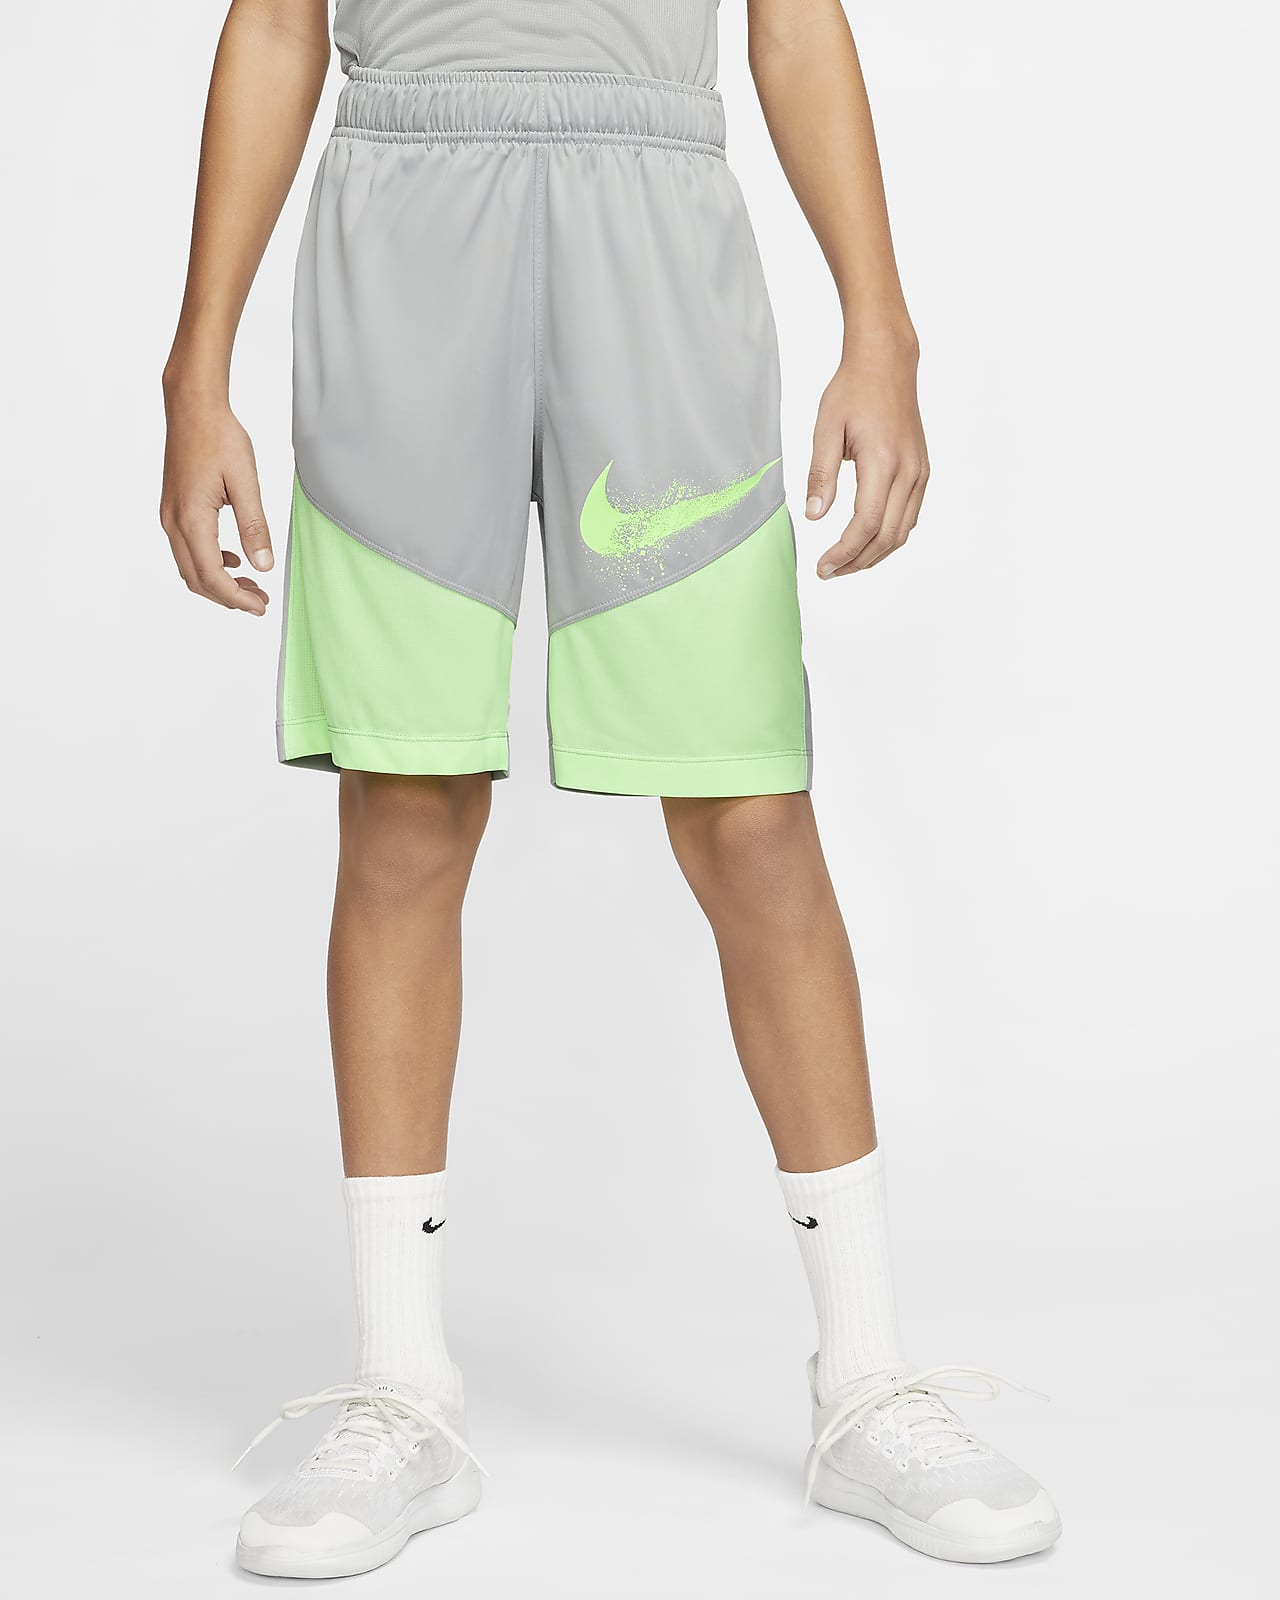 Nike Big Kids' (Boys') Graphic Training Shorts